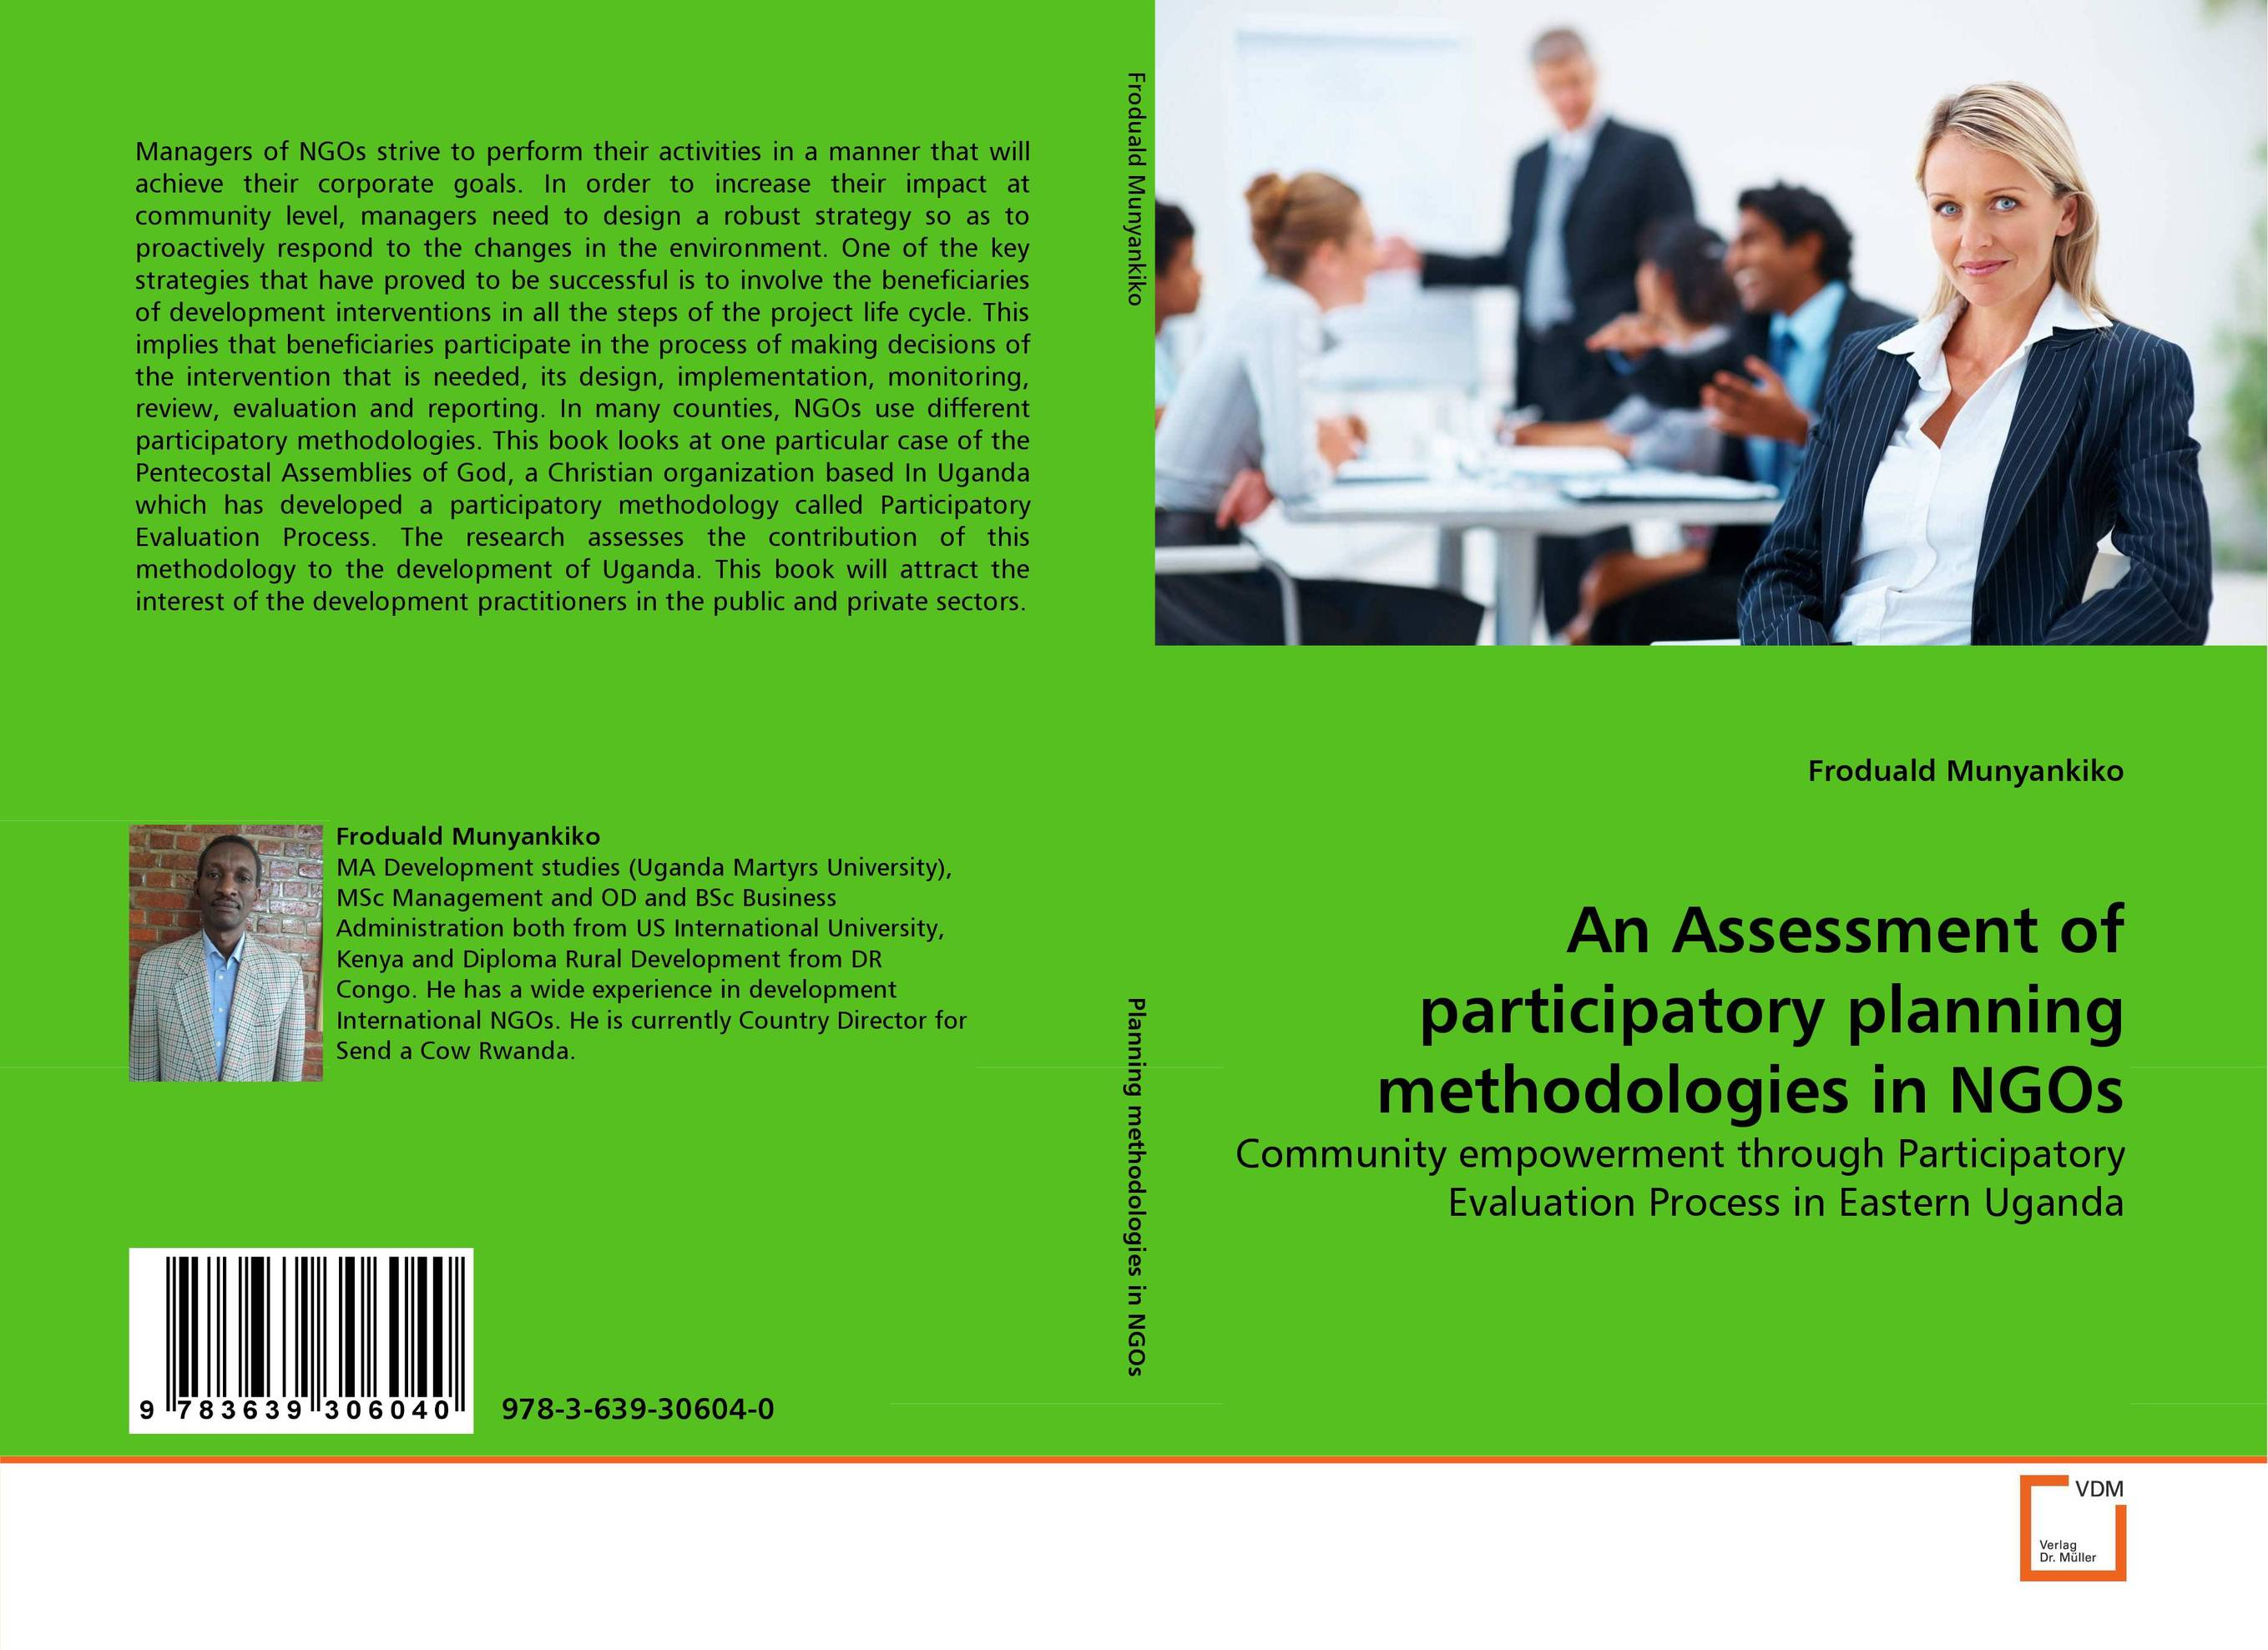 An Assessment of participatory planning methodologies in NGOs ngos